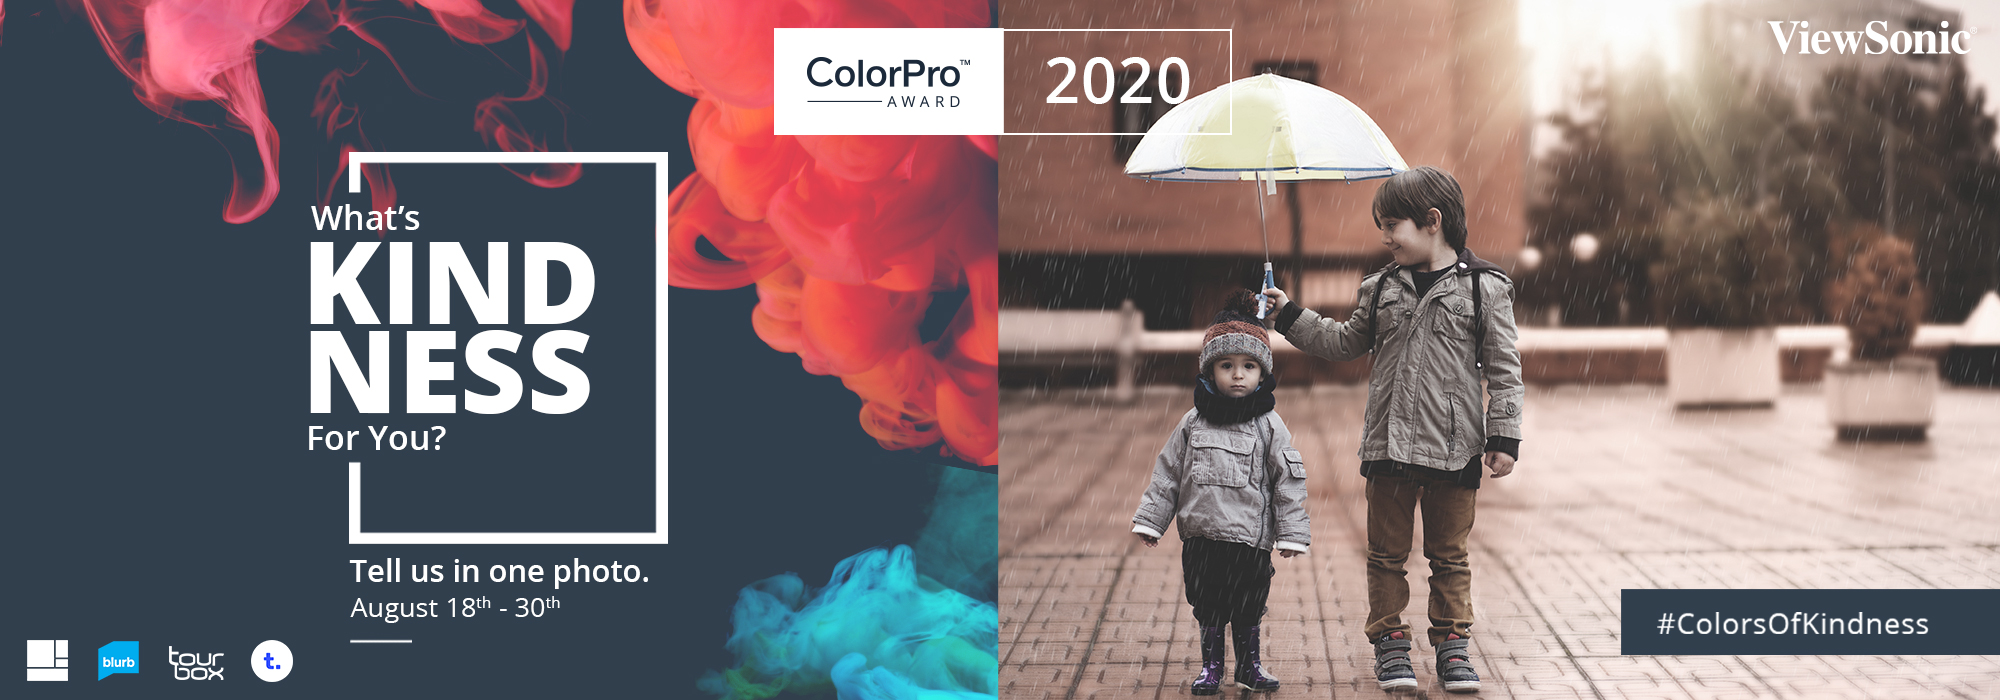 "ViewSonic Holds ""ColorPro Award Global Photography Contest"" to Highlight the Spirit of Kindness"